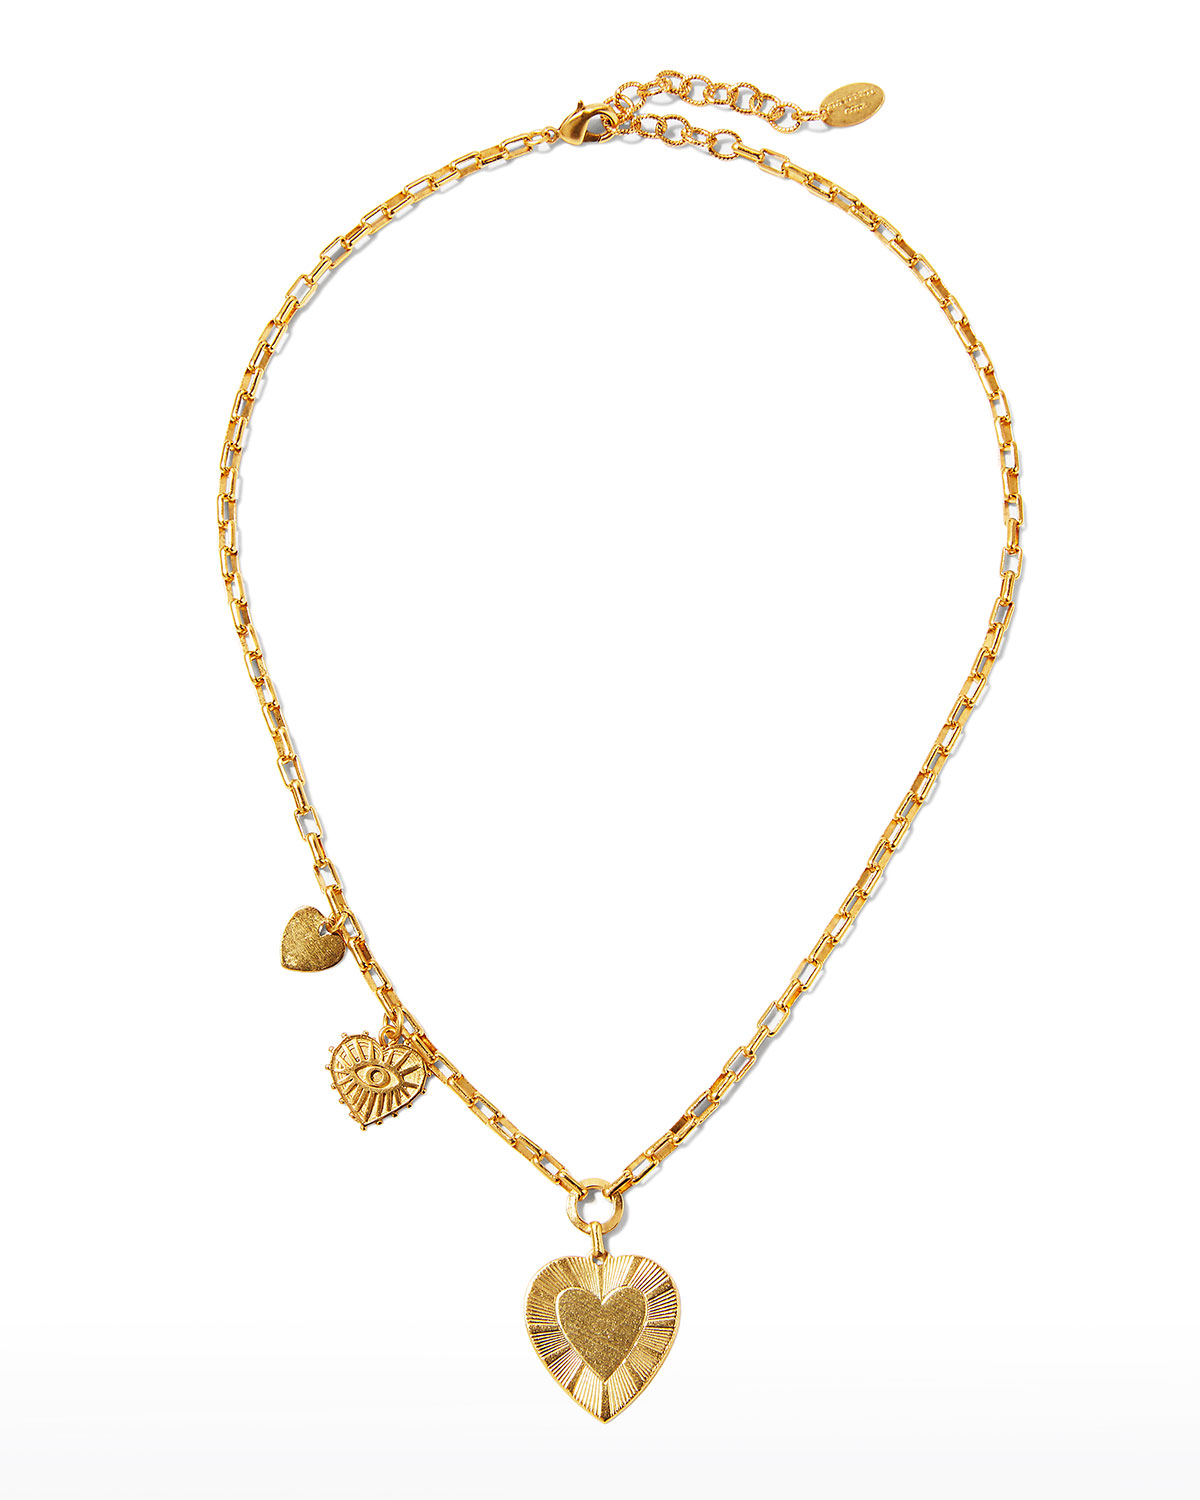 Hart Necklace